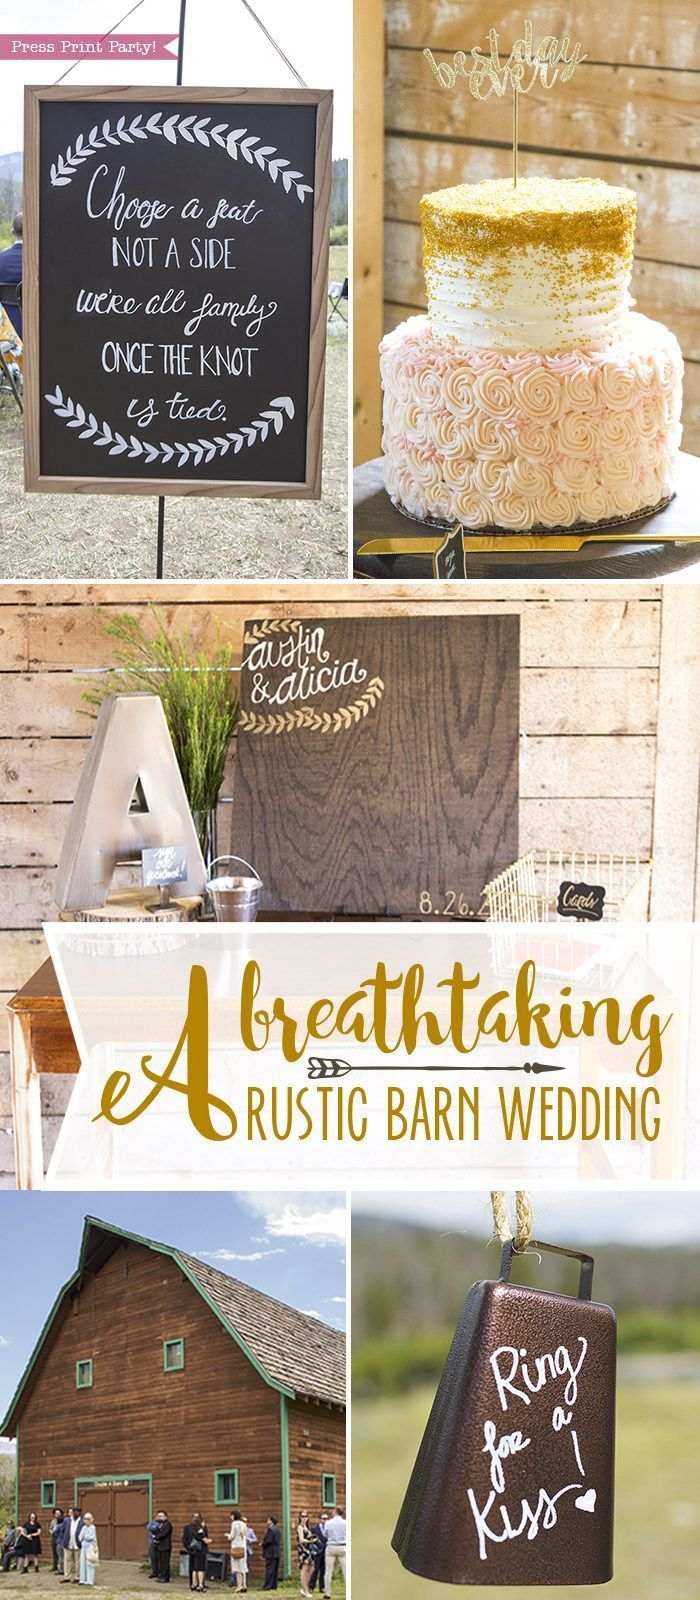 Homemade wedding decoration ideas  A Breathtaking Rustic Barn Wedding on the cheap  Press Print